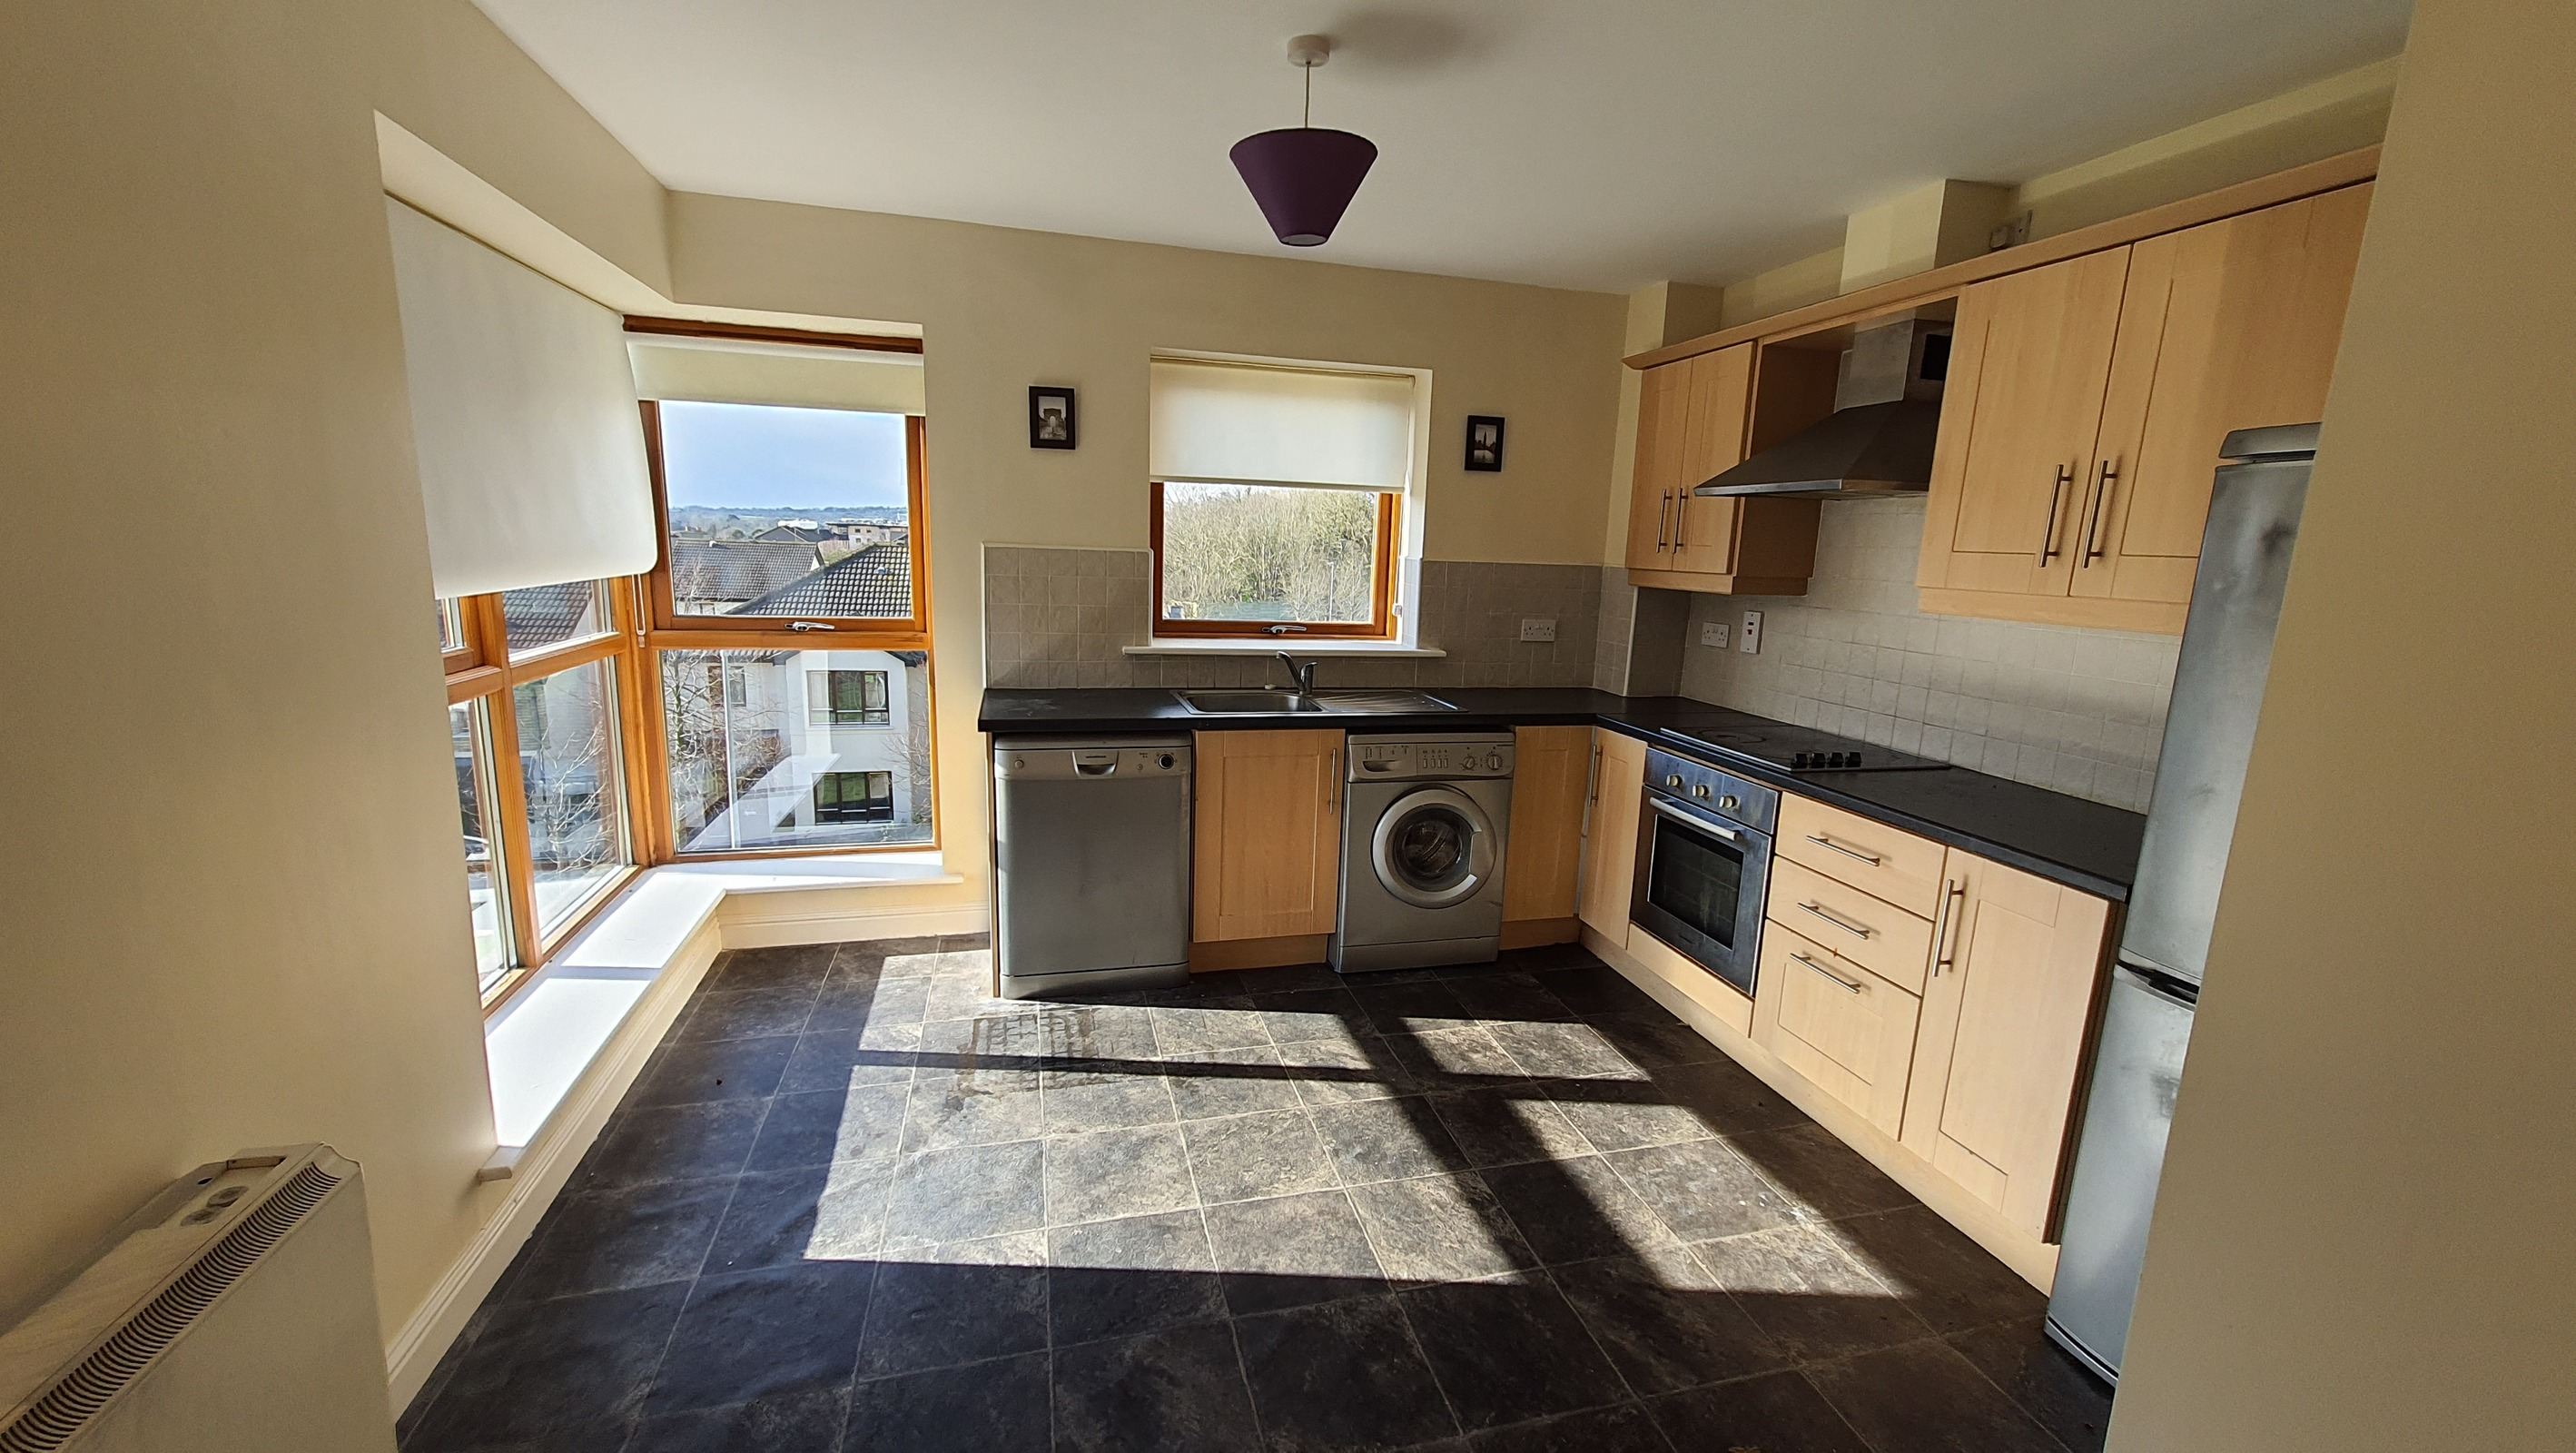 Apartment 13, The Court, Gorey, Co. Wexford